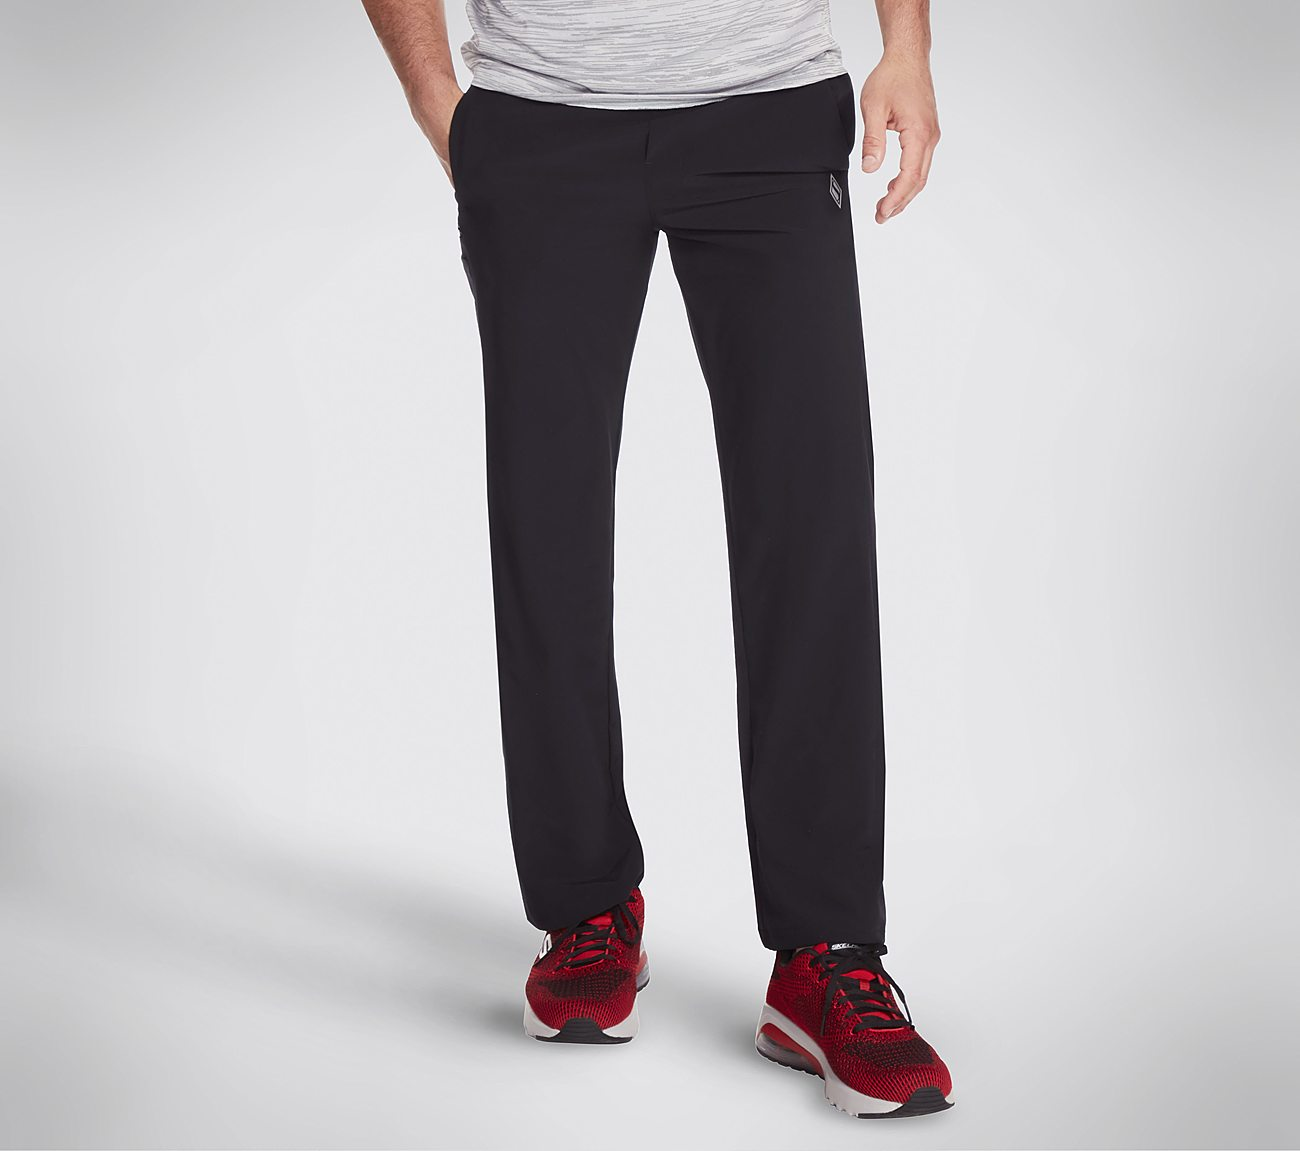 Skechers Apparel GOwalk Movement Pant